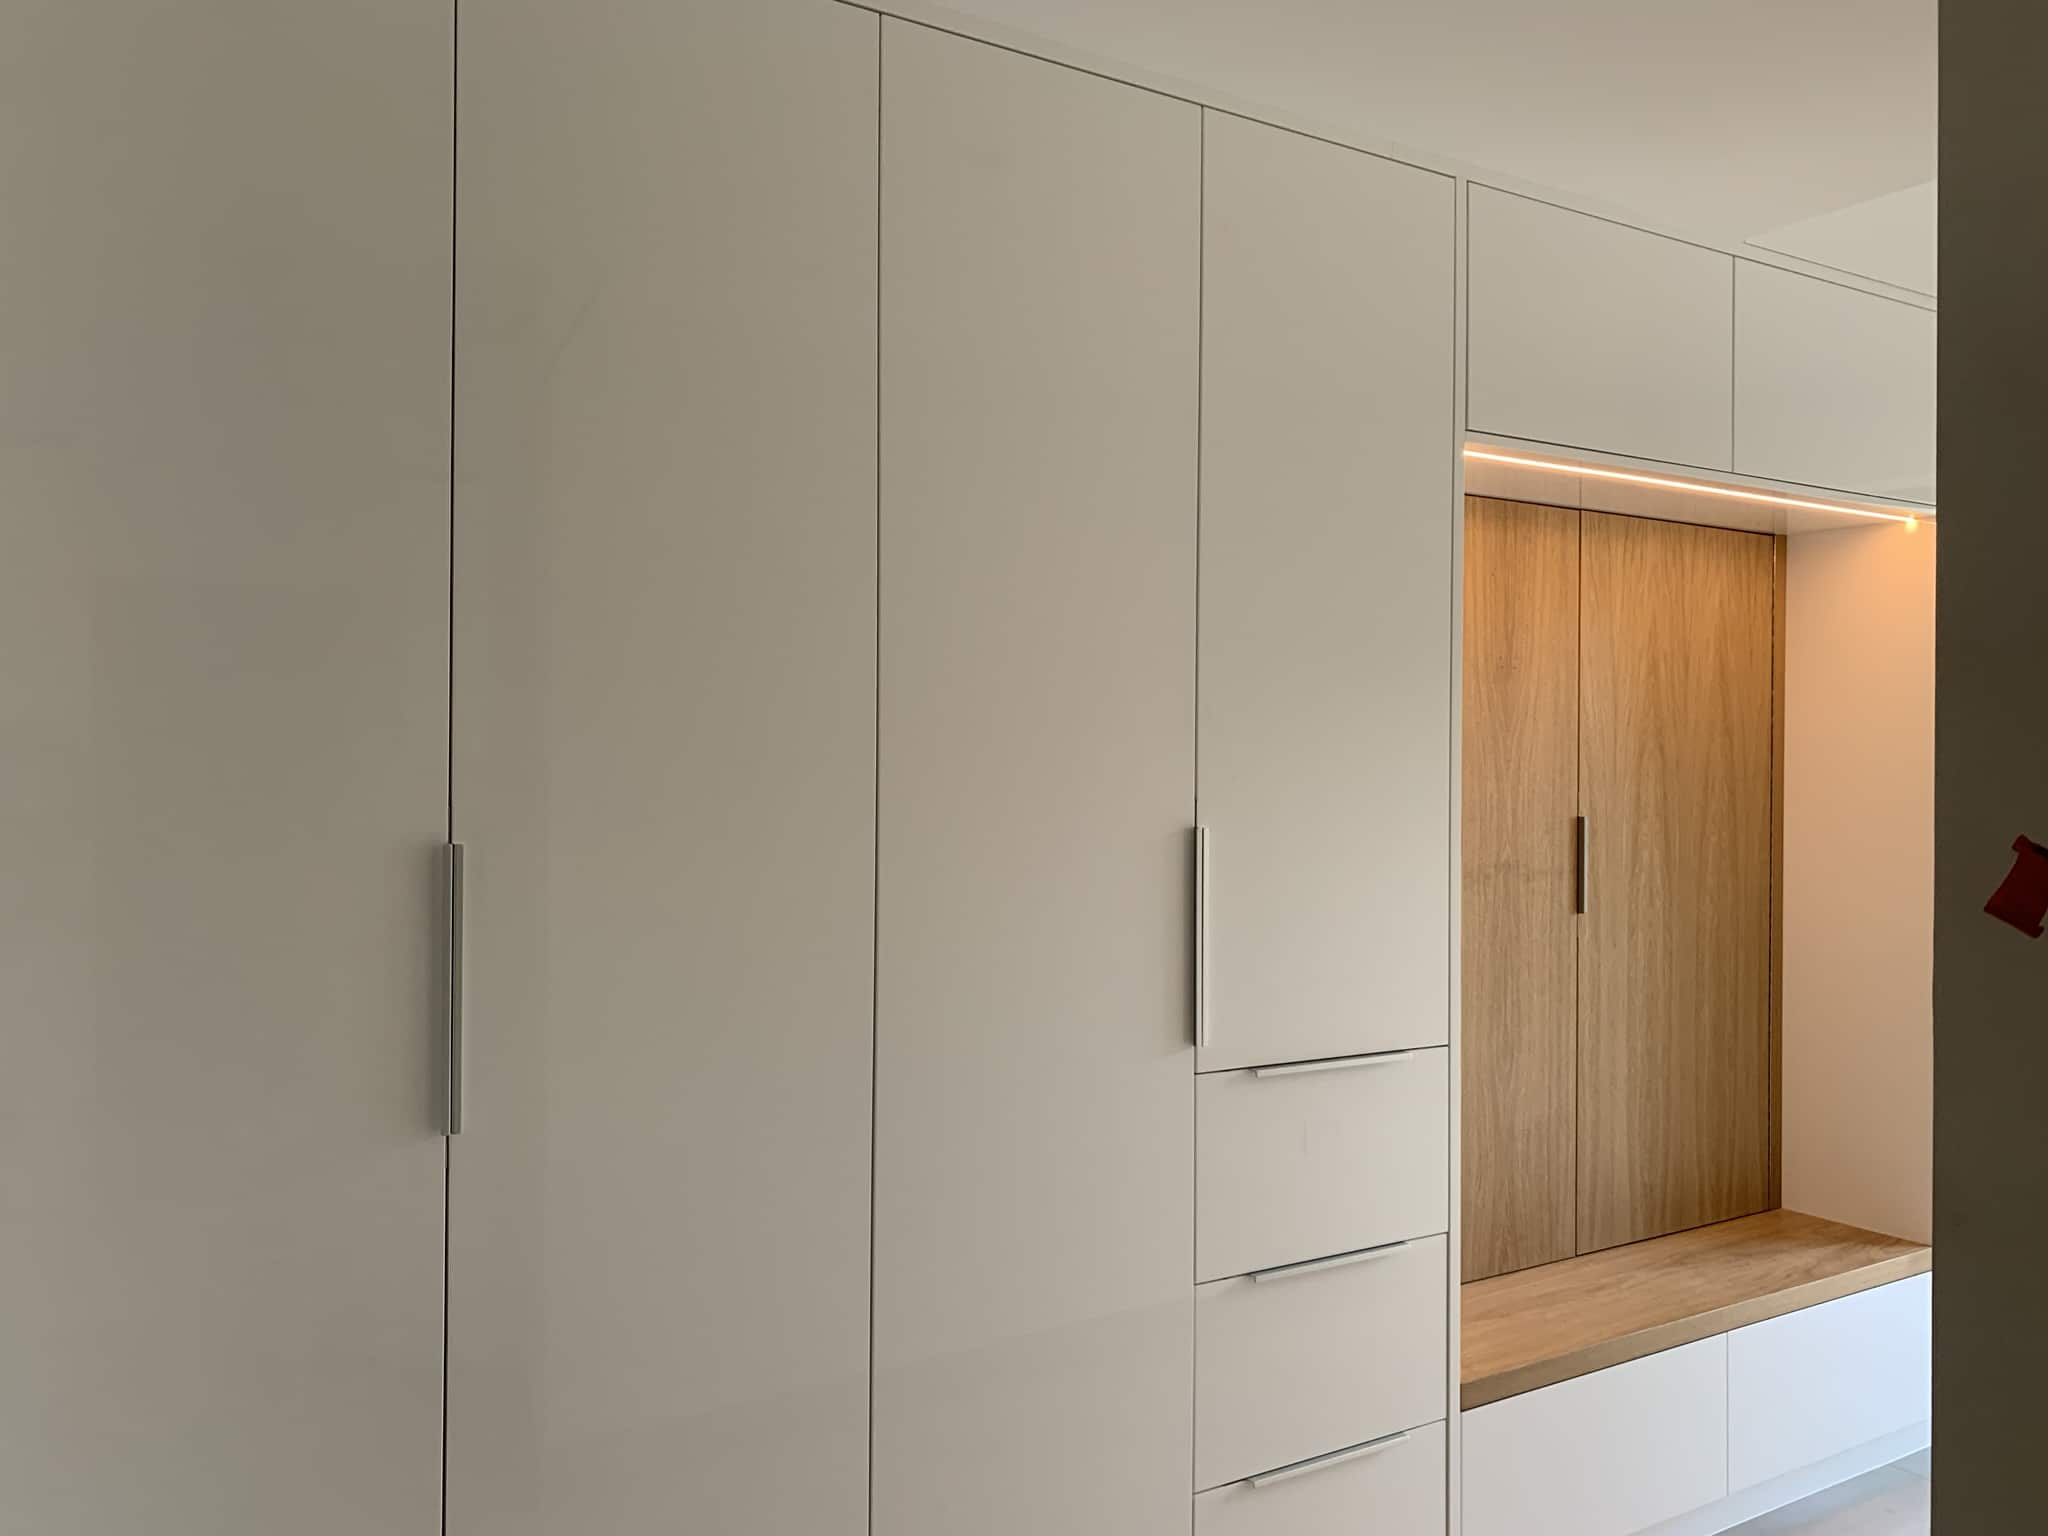 Hallway wardrobe in multi-storage room. Coat hang area with bench. White high gloss finish.